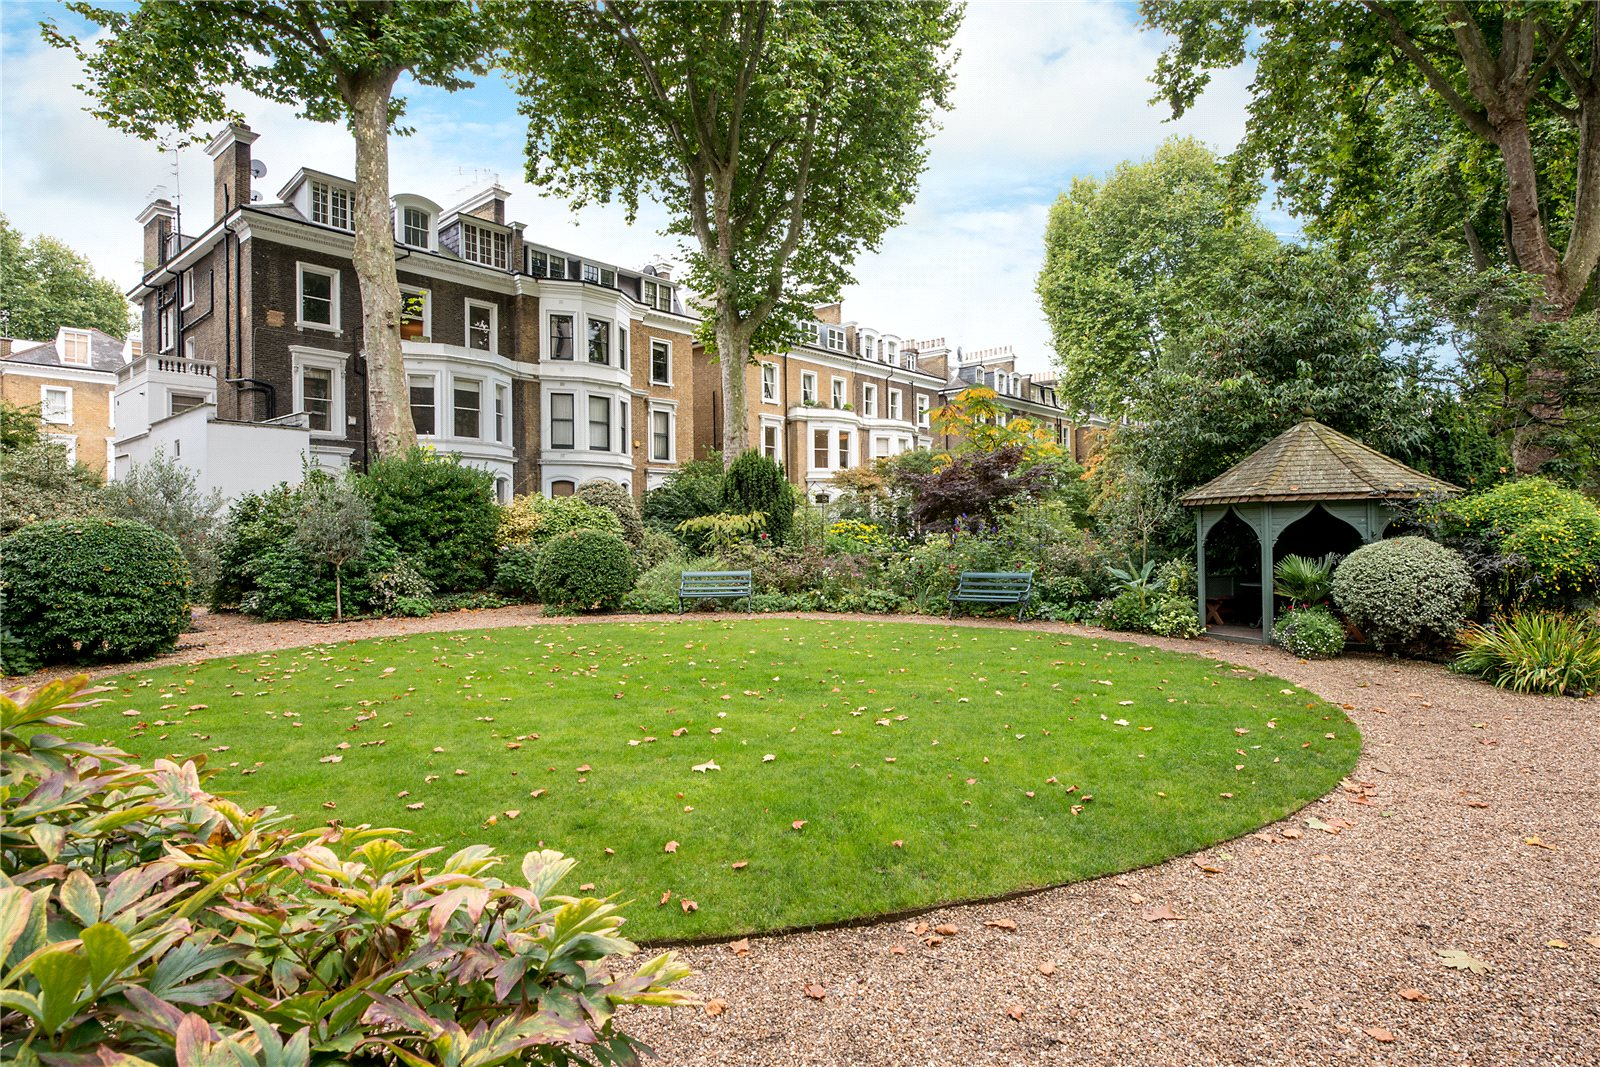 Additional photo for property listing at Wetherby Gardens, South Kensington, London, SW5 South Kensington, London, Αγγλια